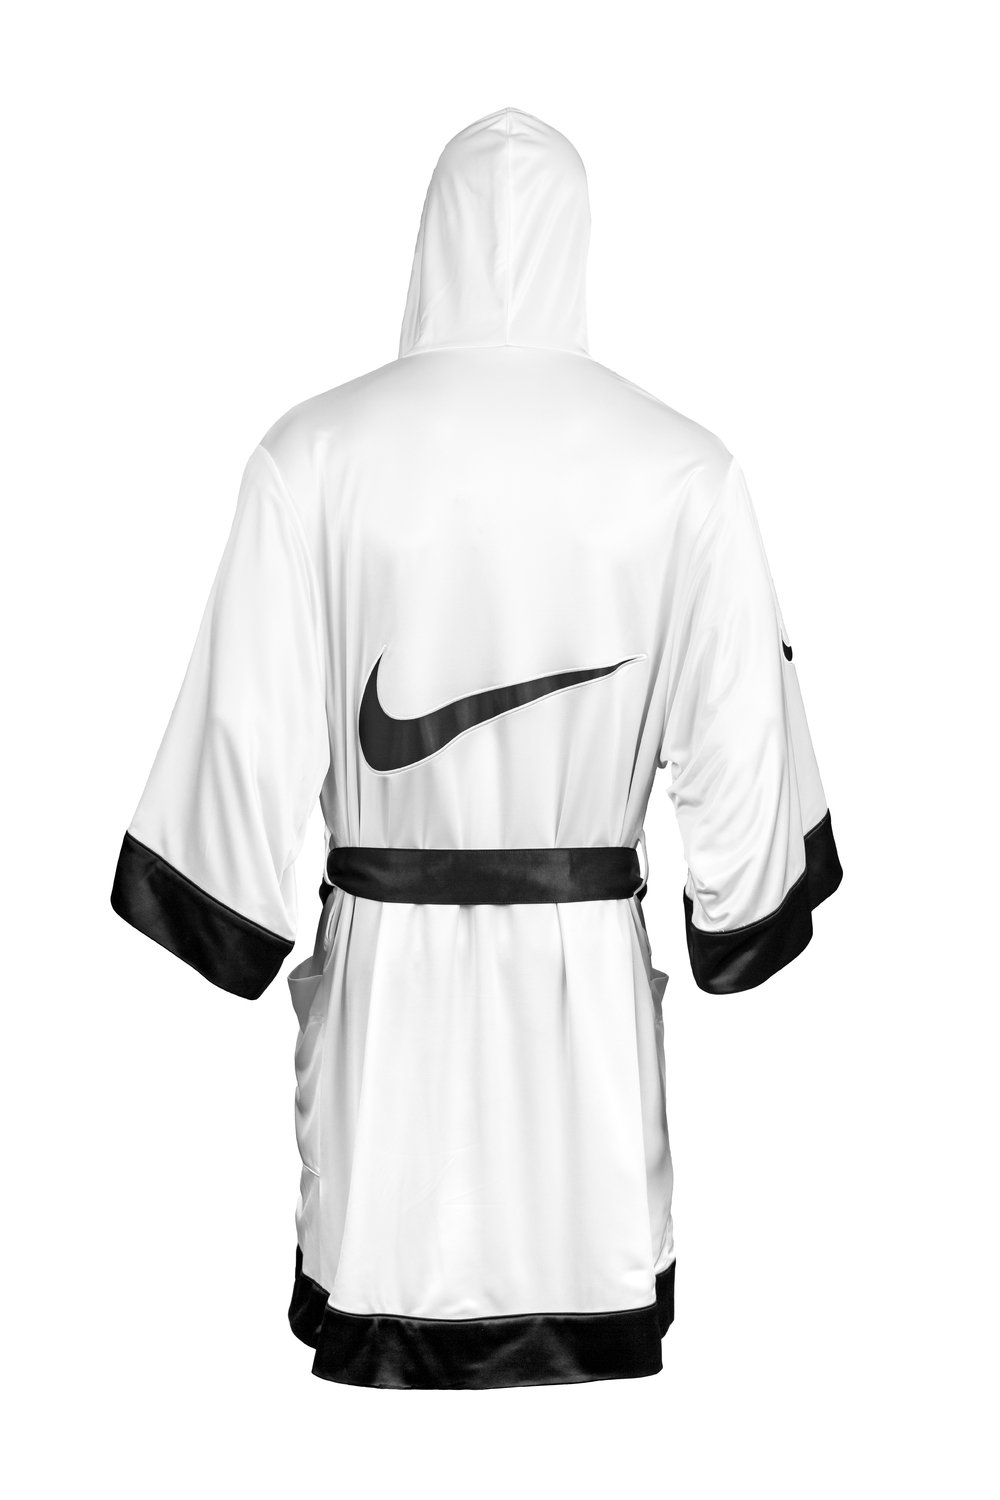 06e908008c9ef8 Nike Boxing Jacket white black - Kickboxing and boxing clothing - Online  vechtsportwinkel Aiki-Budo Sport